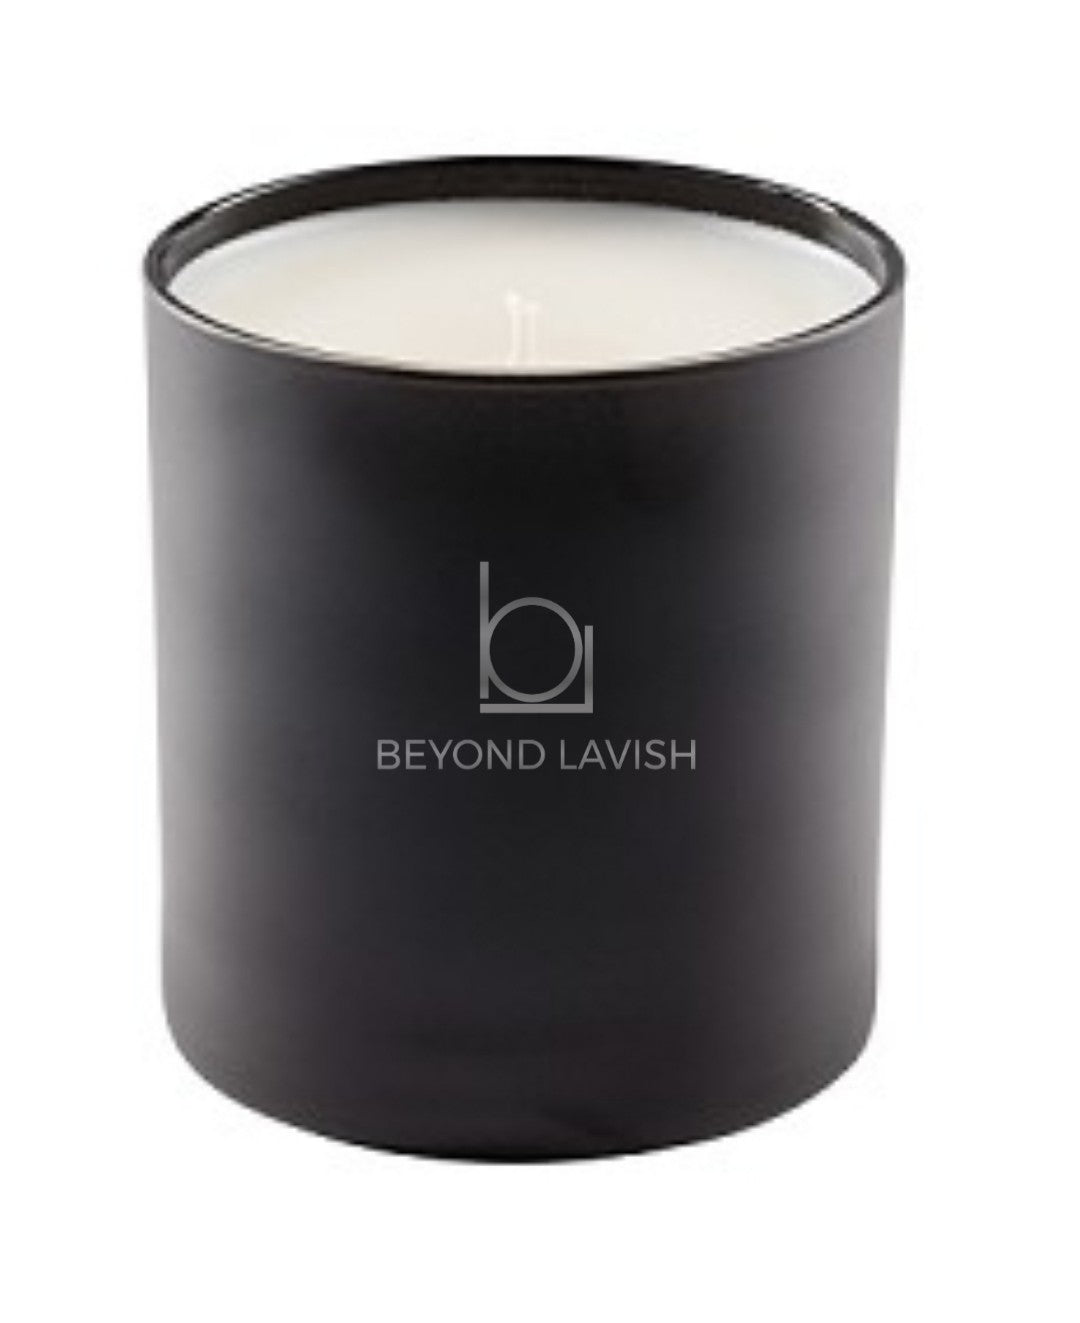 BEYOND LAVISH Ritual Bath